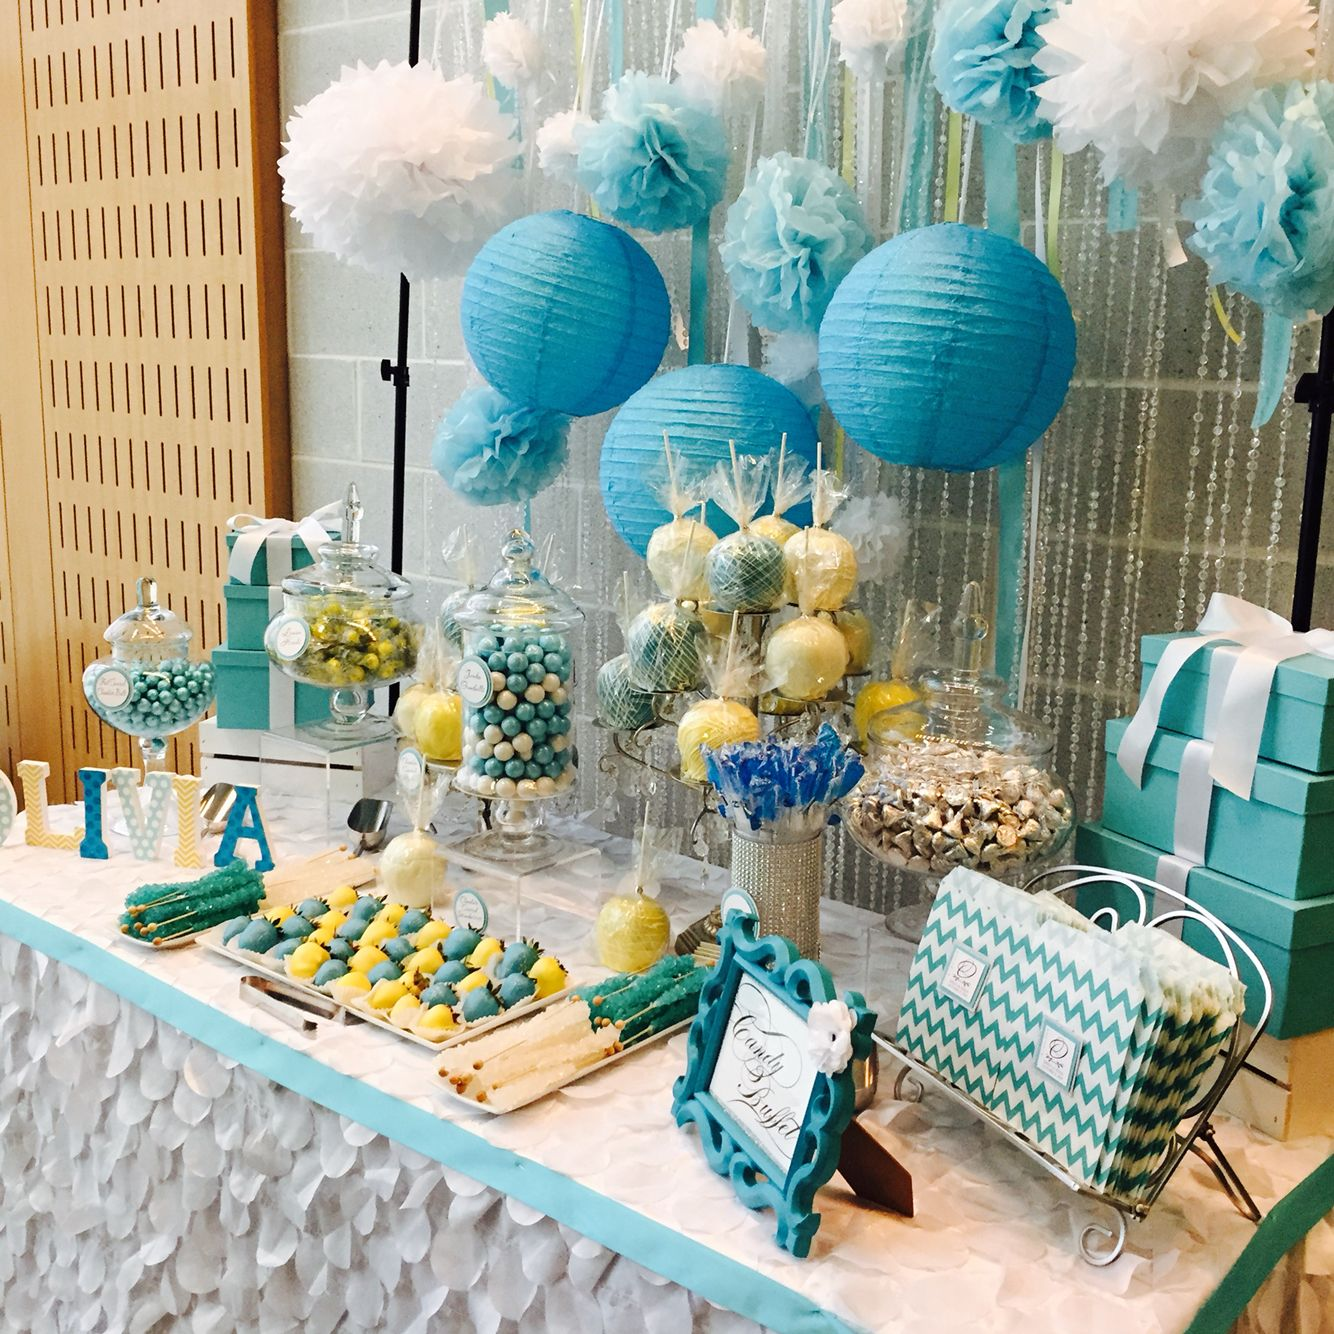 Candy For Baby Shower Ideas: Tiffany Blue, Yellow And White Baby Shower Sweets Table By